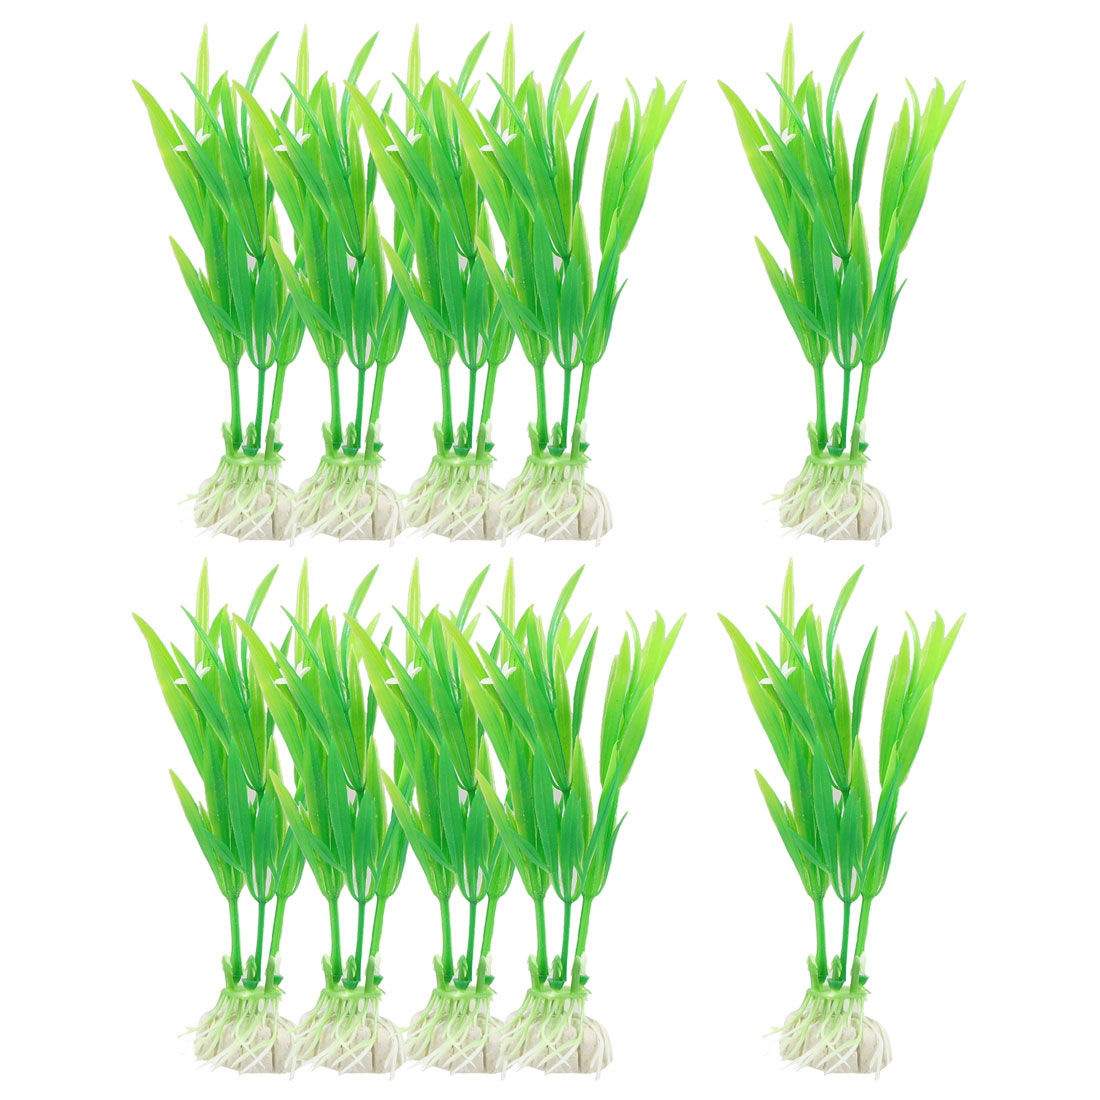 "10 Pcs 4.3"" High Green Slender Leaf Flower Decor Simulation Aquatic Grasses"